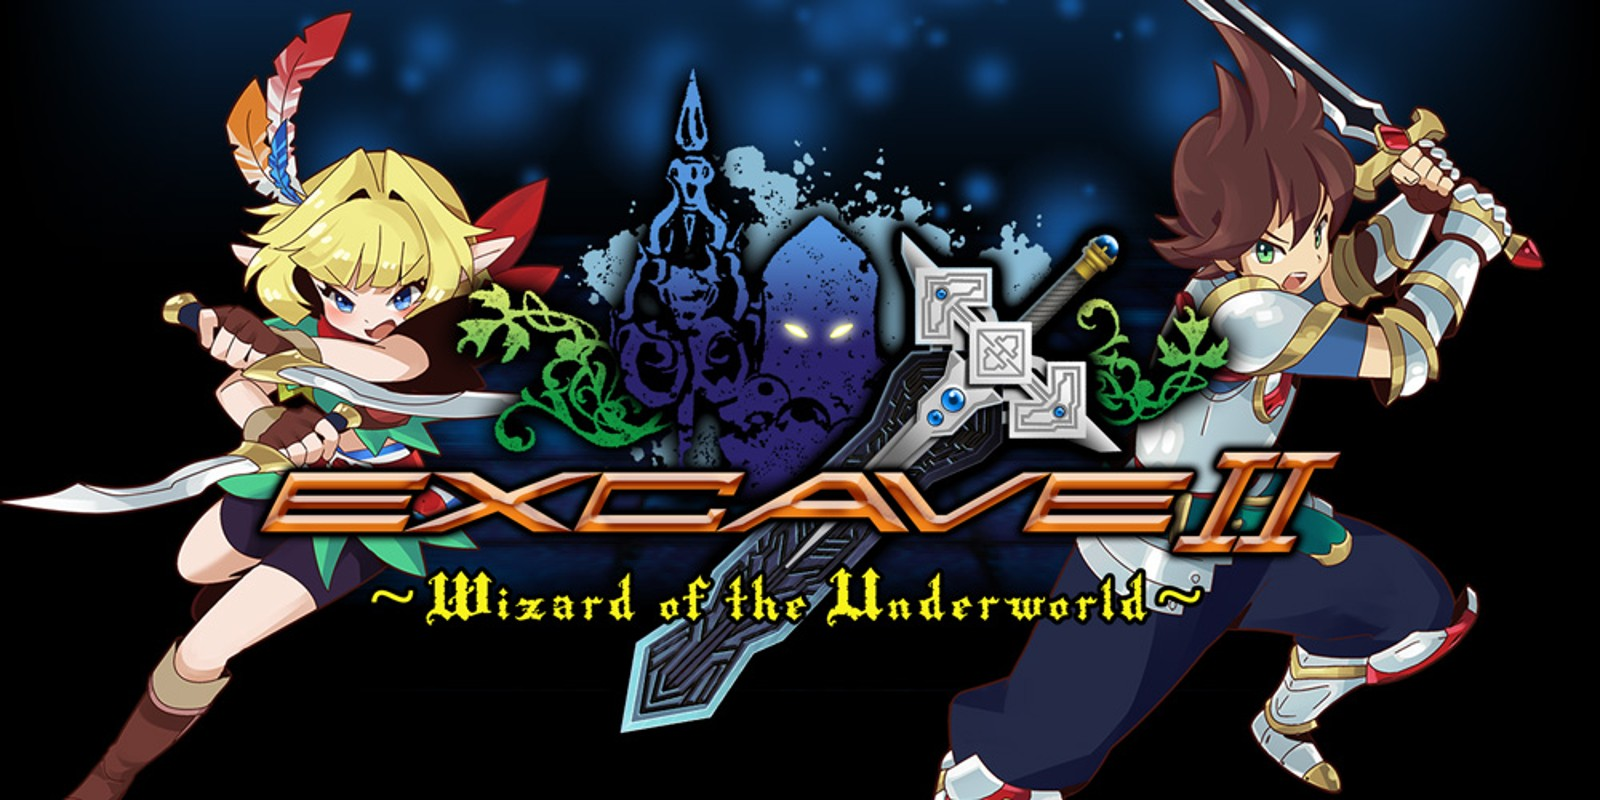 Excave II : Wizard of the Underworld